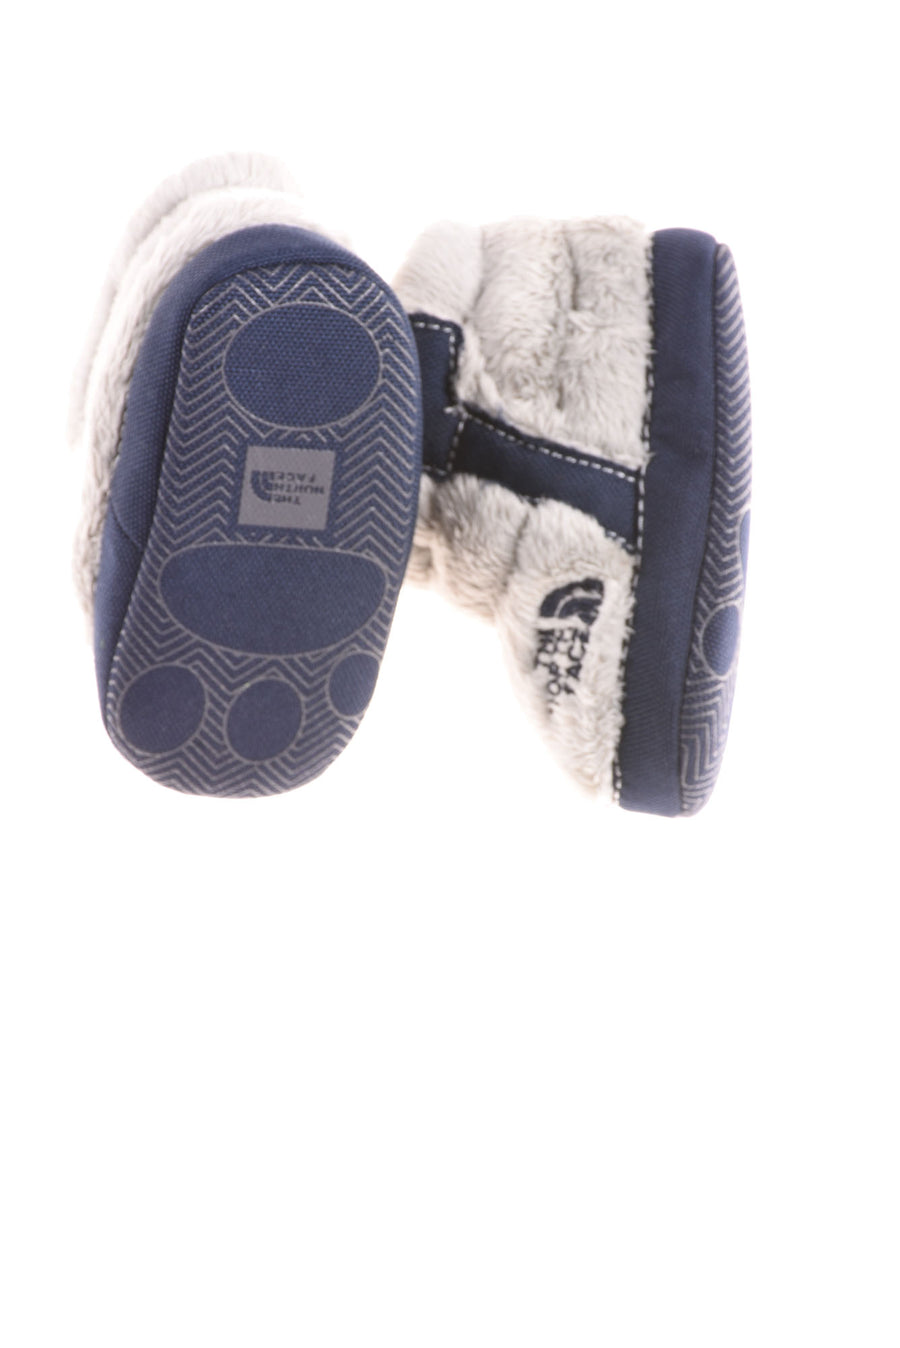 USED The North Face Baby Boy's Boots 3 Blue & Gray